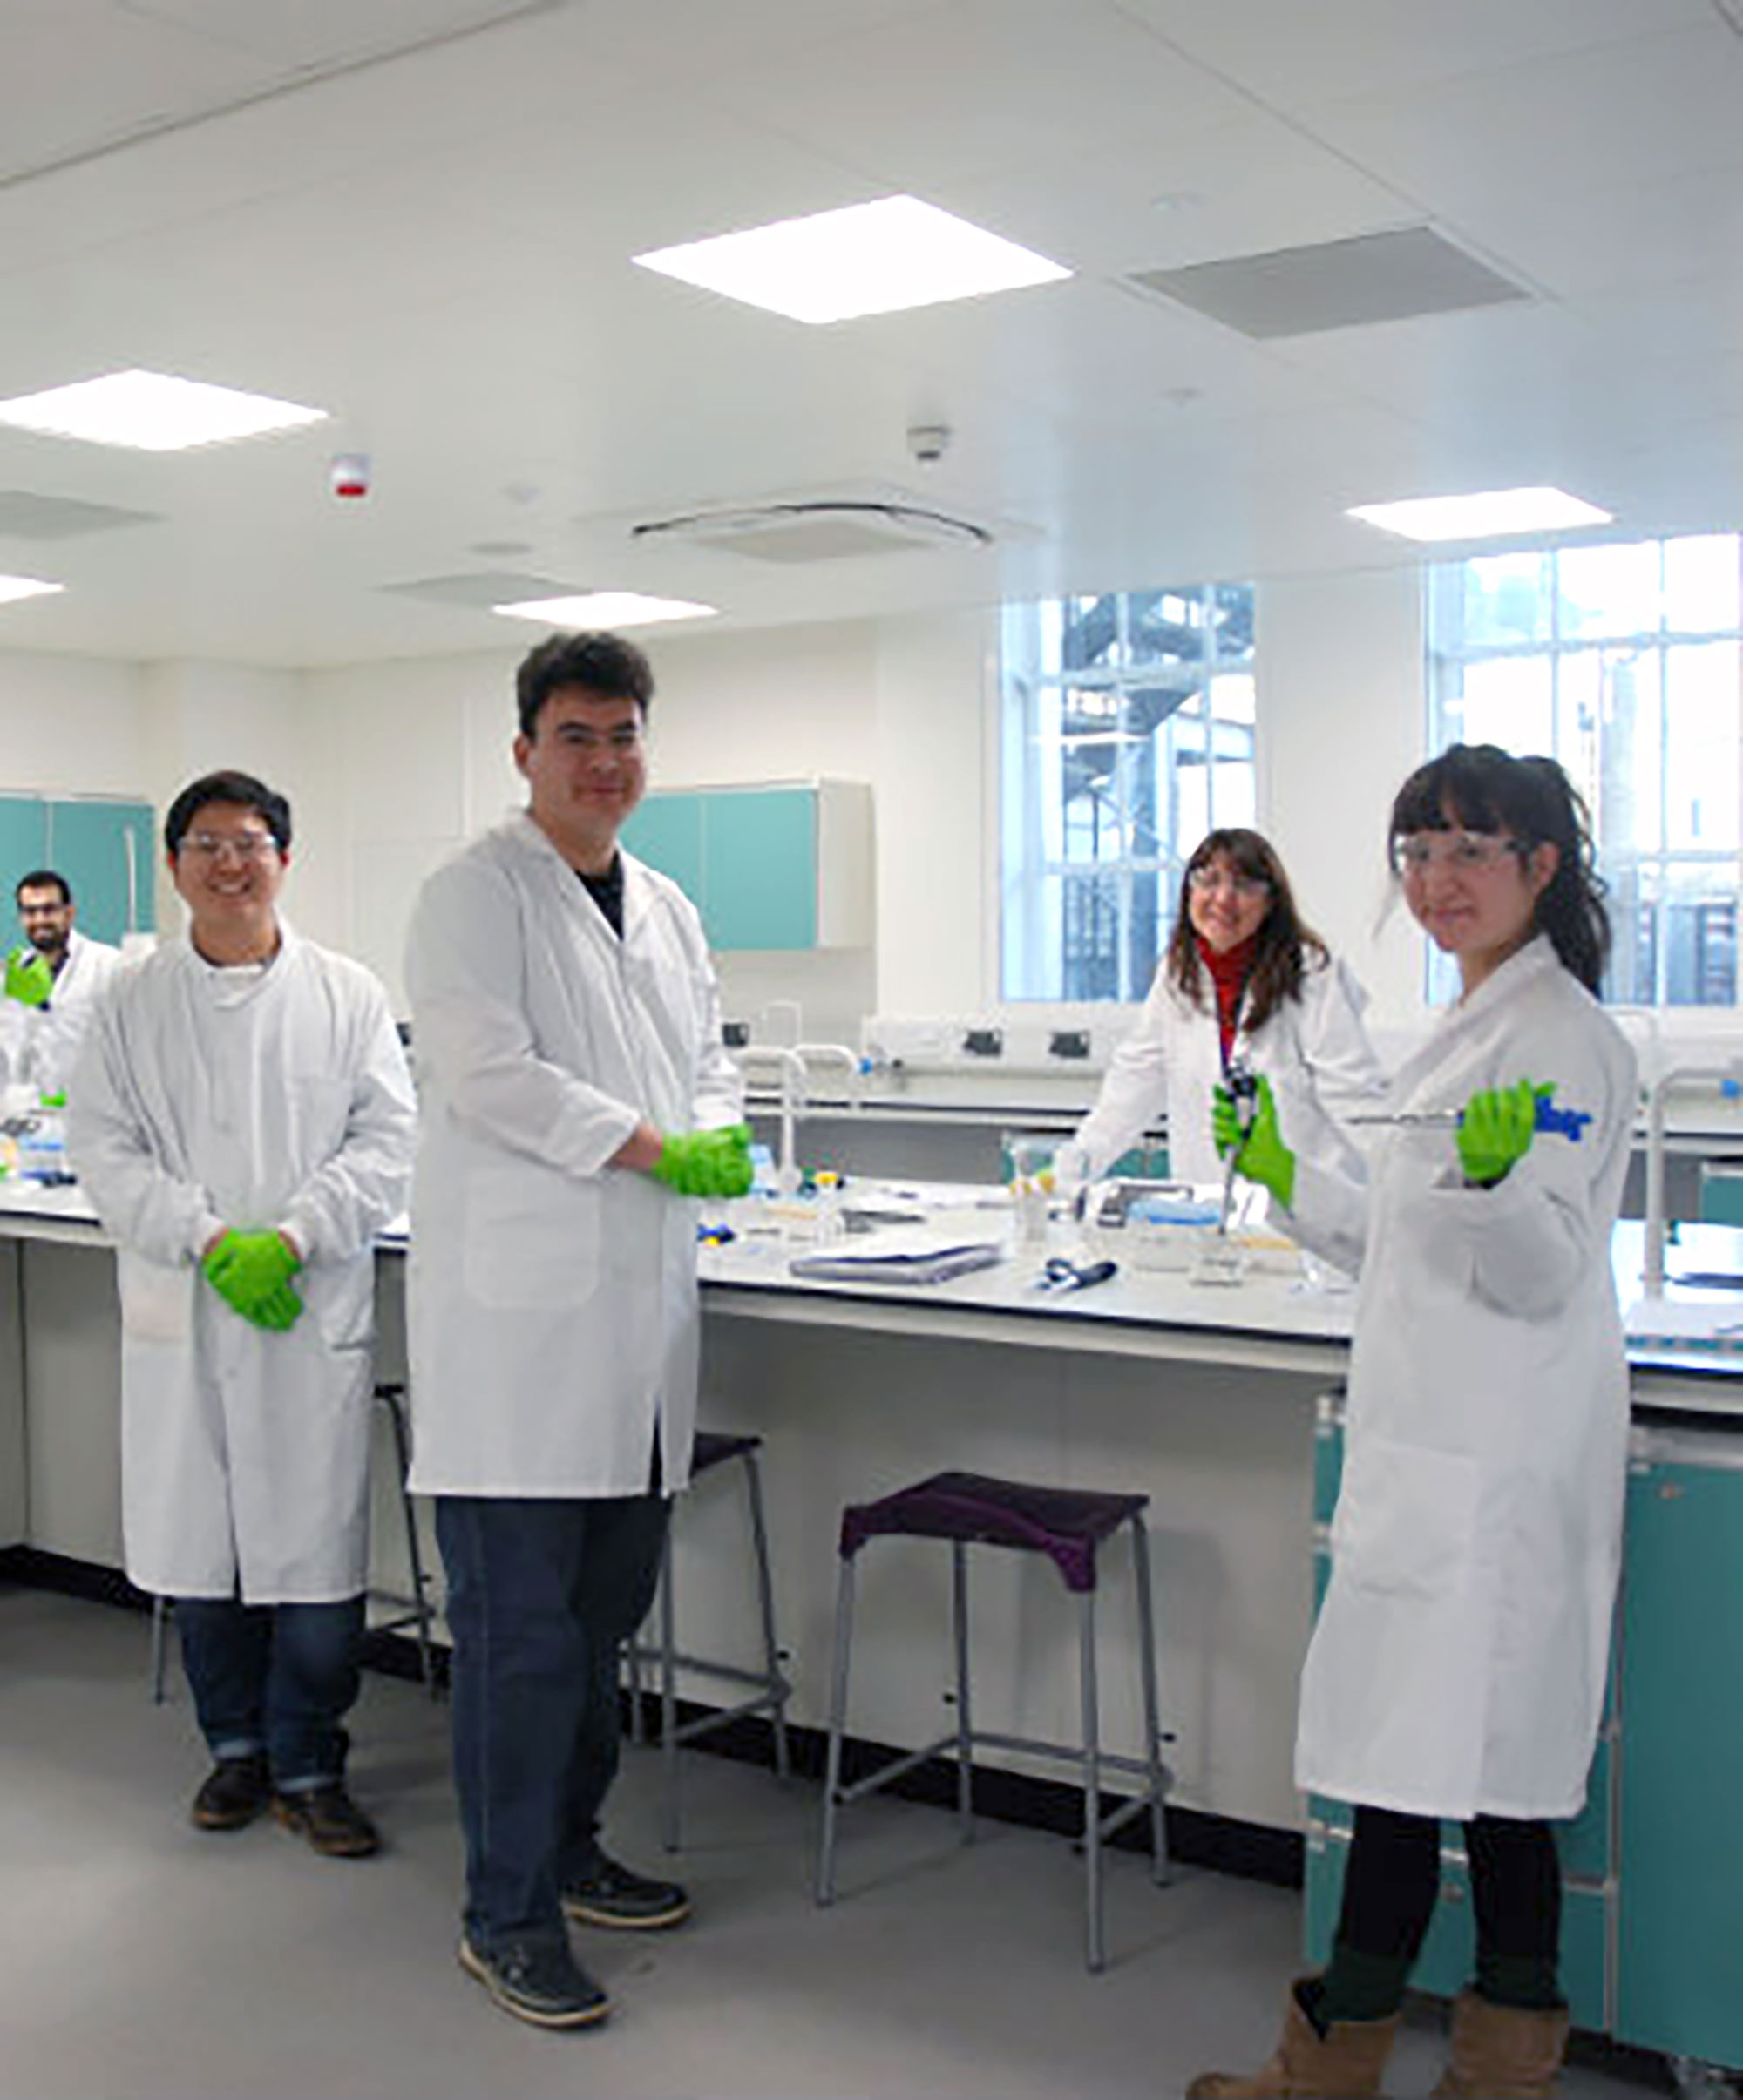 UCL-school-of-pharmacy-3.jpg